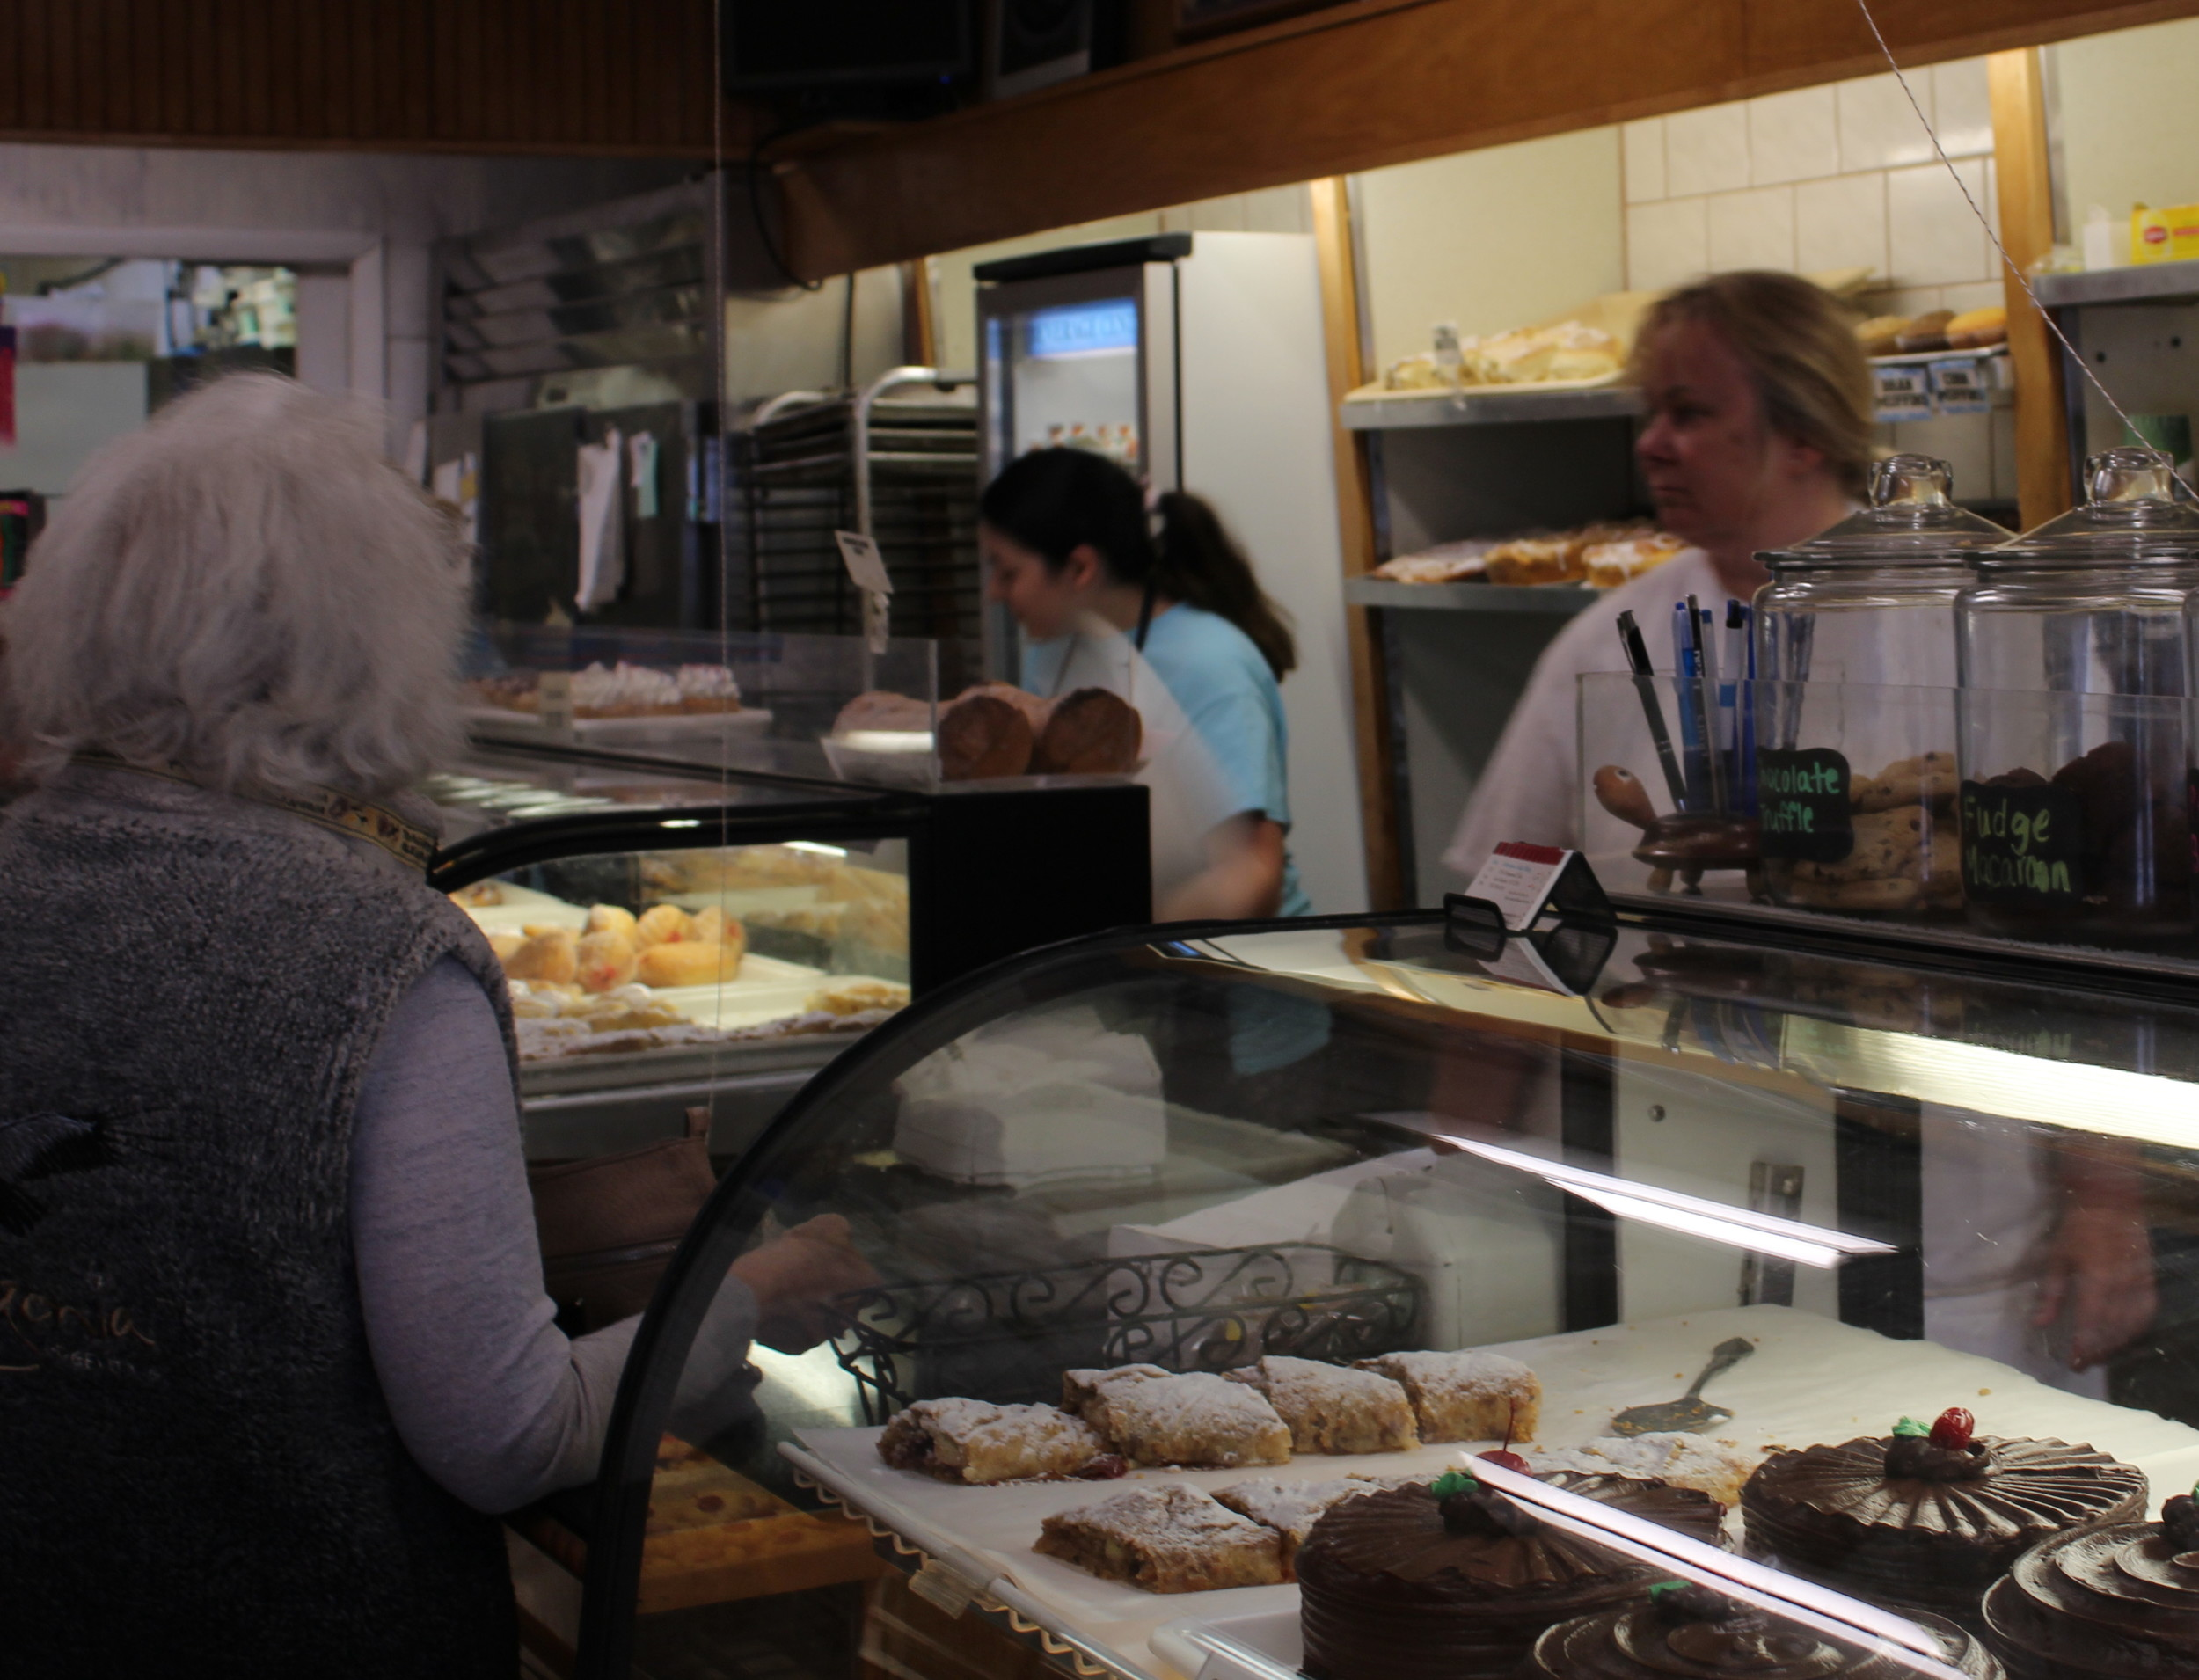 Debbie Entenmann, far right, tends to customers during the morning breakfast traffic at her family bakery.